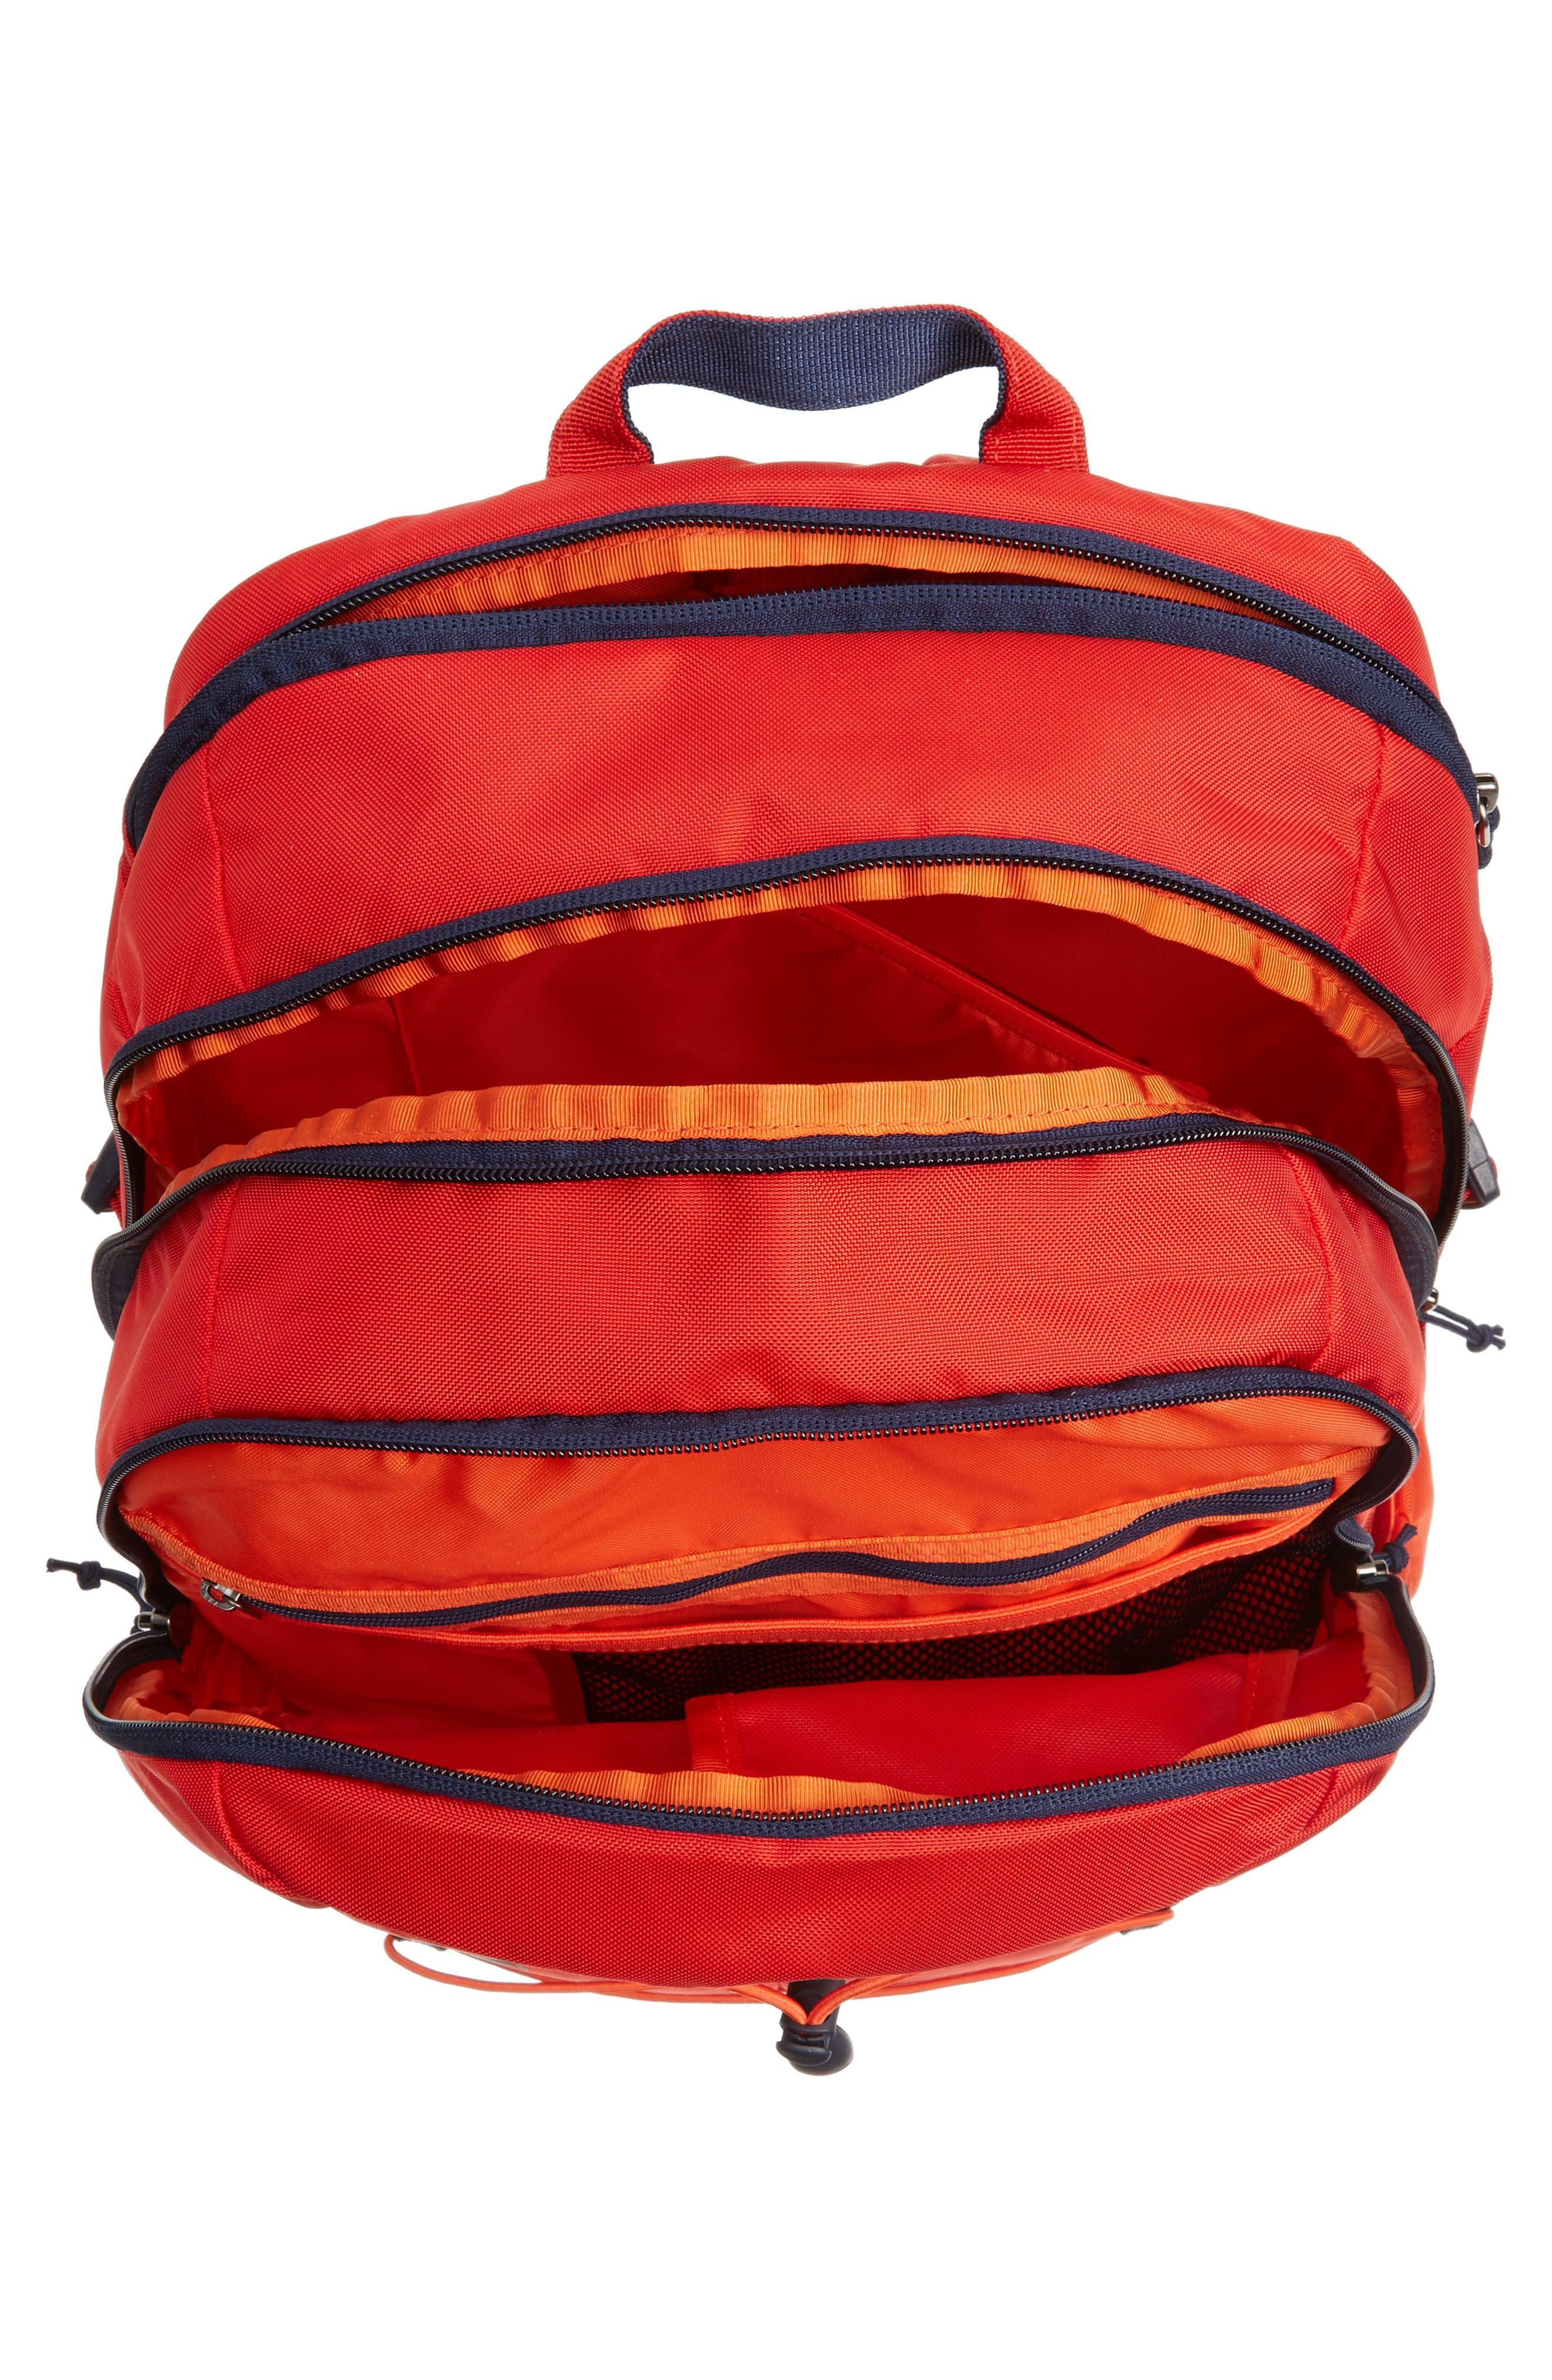 30L Chacabuco Backpack,                             Alternate thumbnail 4, color,                             Paintbrush Red